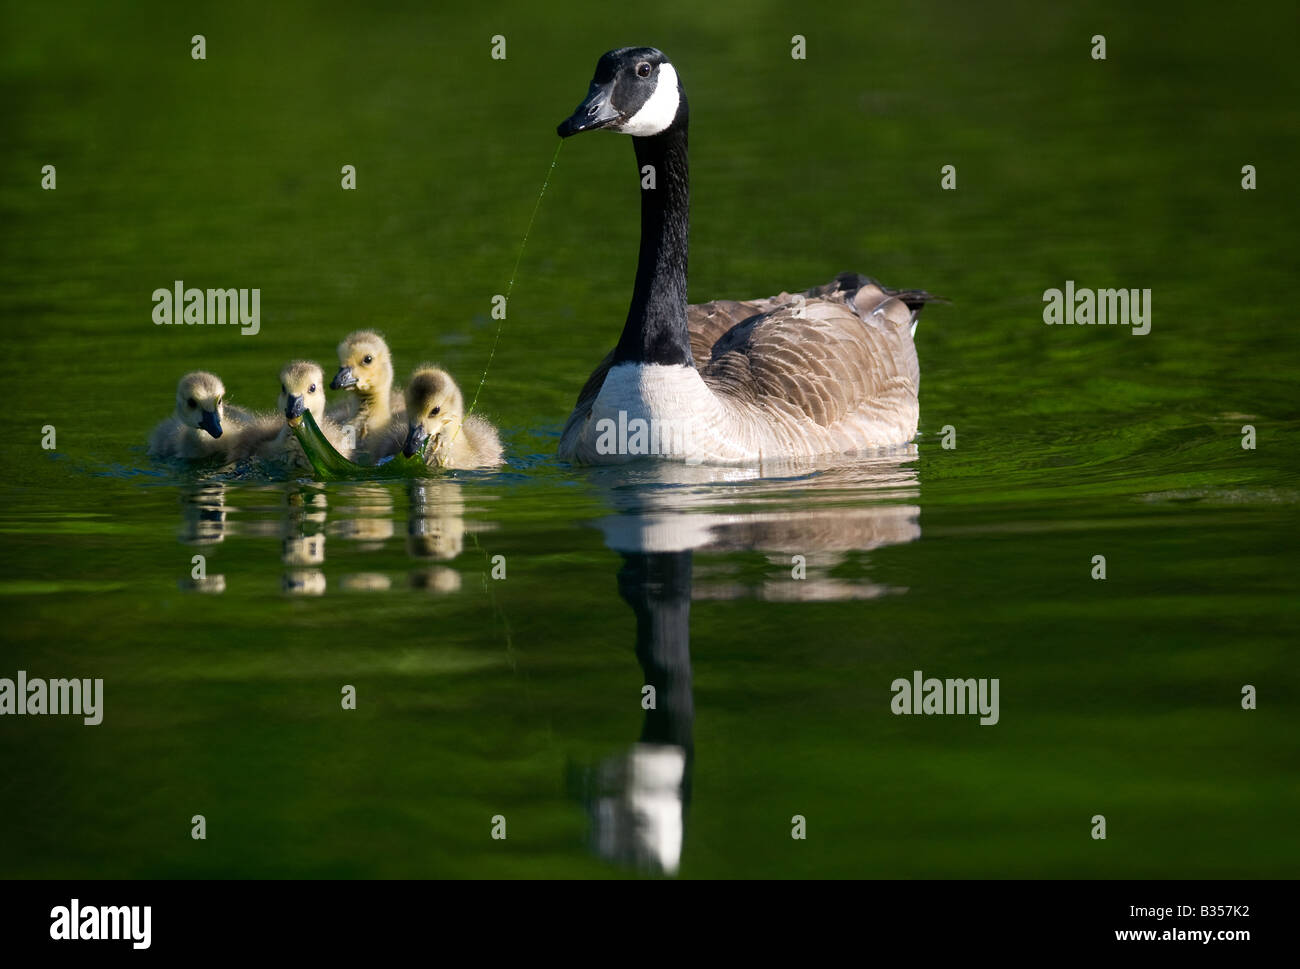 A Canada goose and her goslings feed on Lake Windsor in Bella Vista, Arkansas, U.S.A. - Stock Image